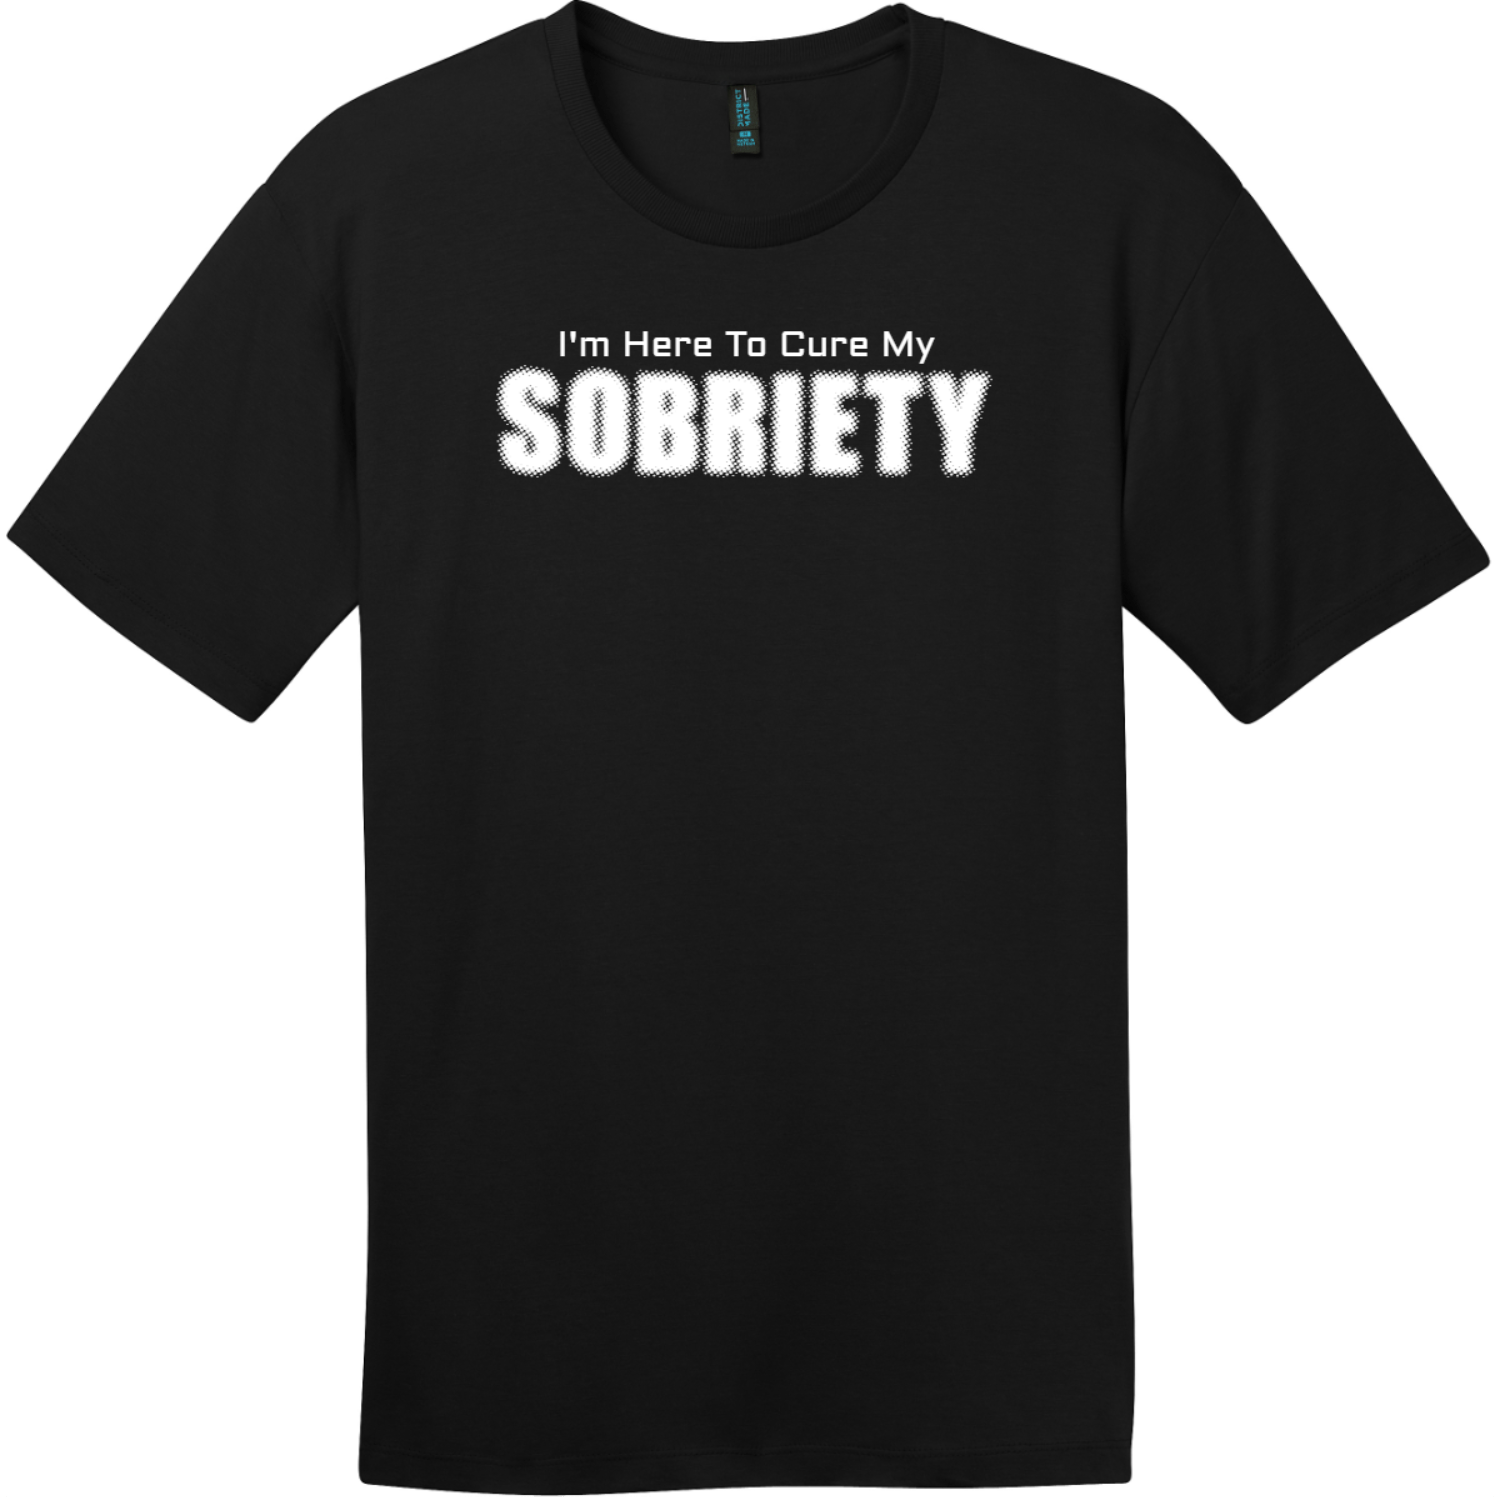 I Am Here To Cure My Sobriety T-Shirt Jet Black District Perfect Weight Tee DT104